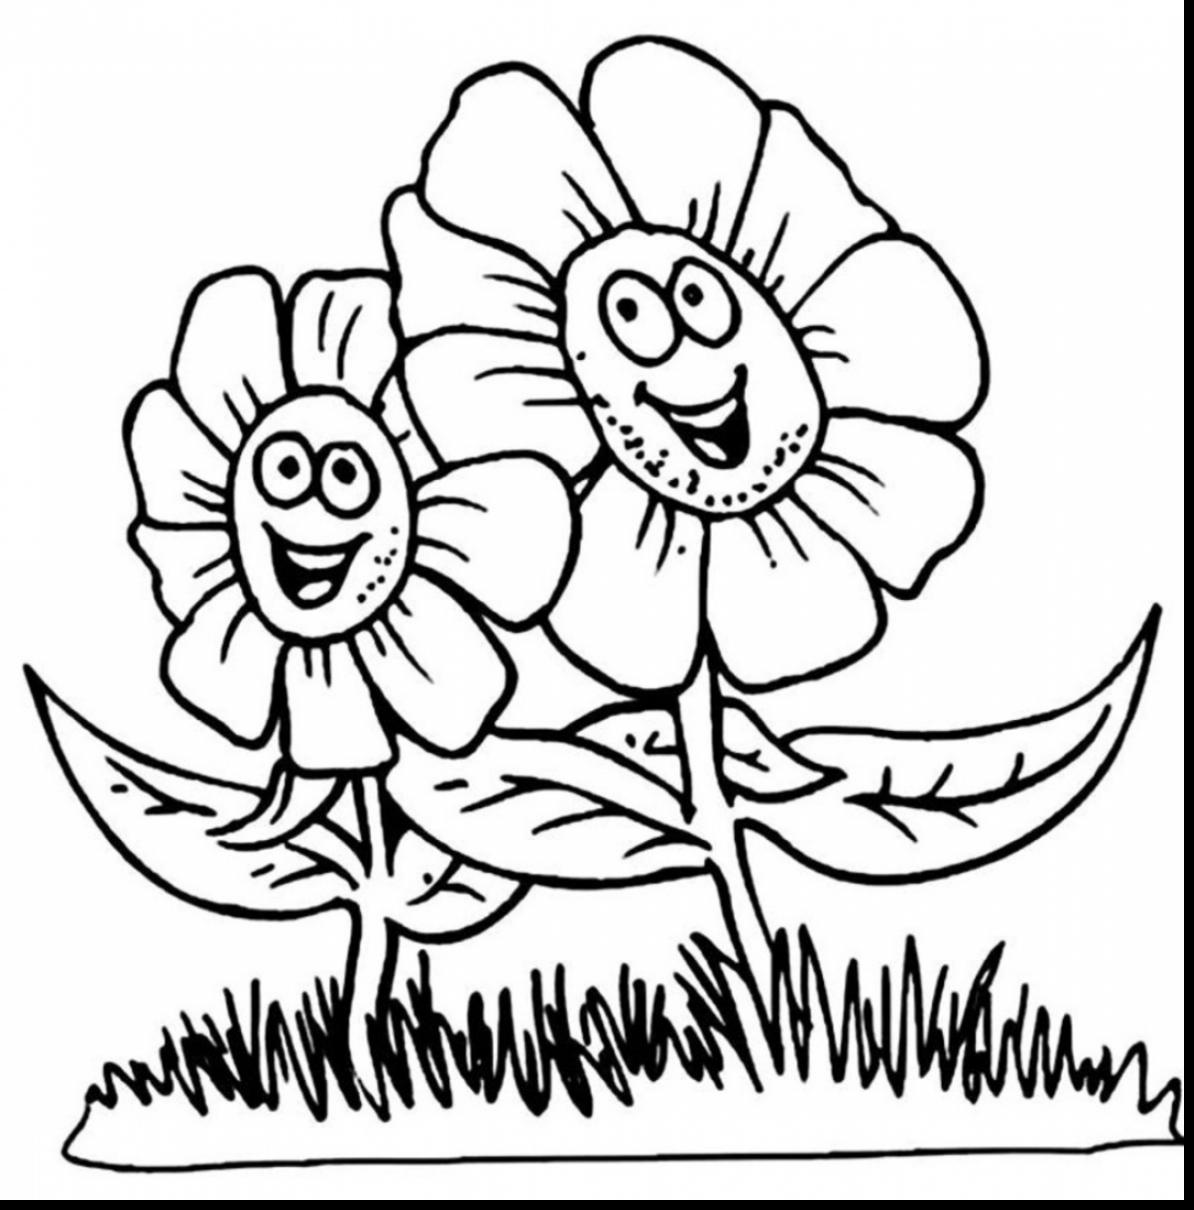 1194x1210 Astounding Design Spring Flowers Coloring Pages Excellent Flower